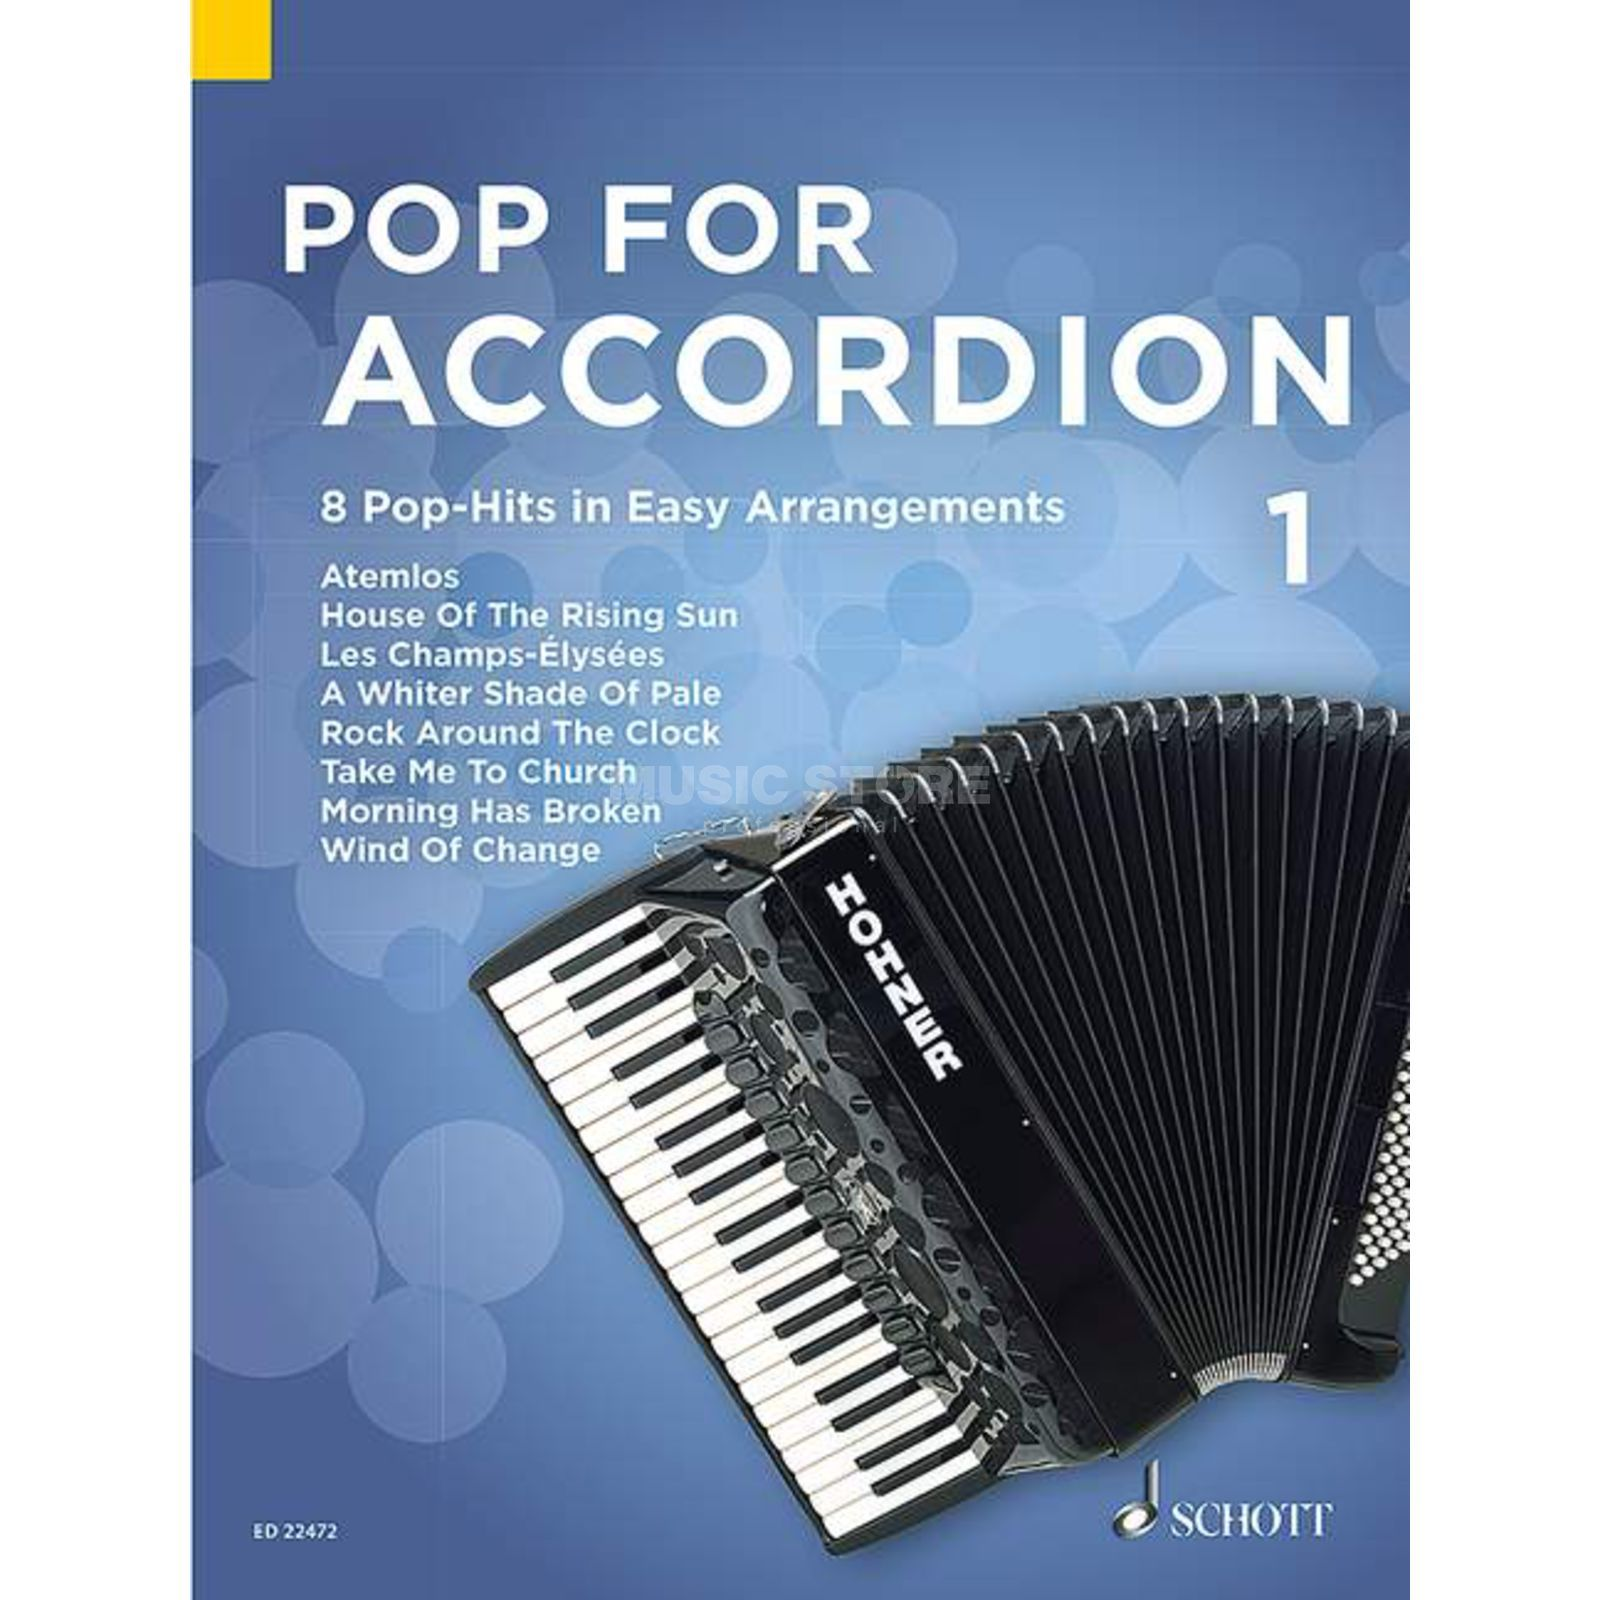 Schott Music Pop For Accordion 1 Image du produit